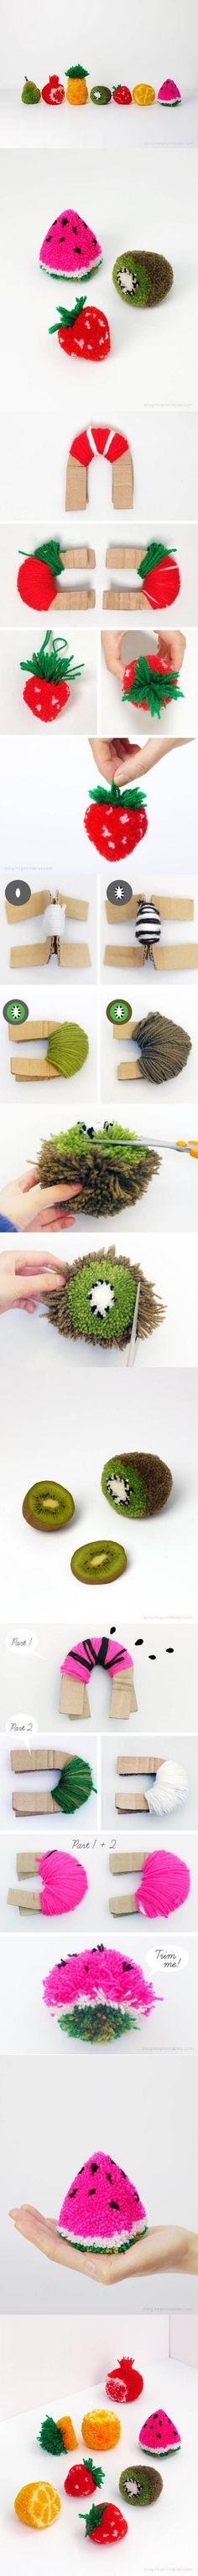 DIY : pompons en forme de fruits. pompom fruit